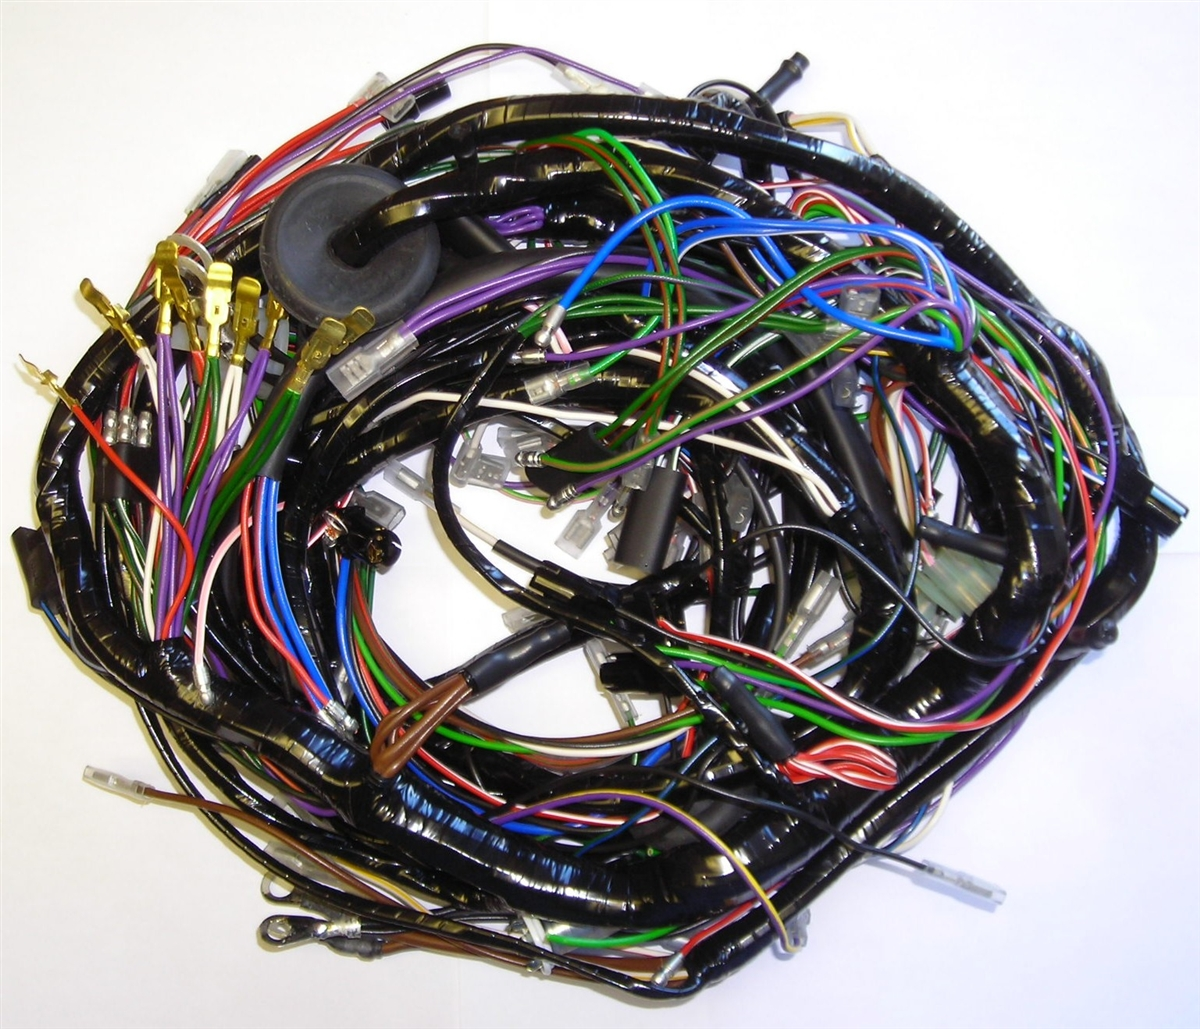 1523 2?1354101756 spitfire 1500 main wiring harness 73 triumph spitfire 1500 wiring harness at sewacar.co